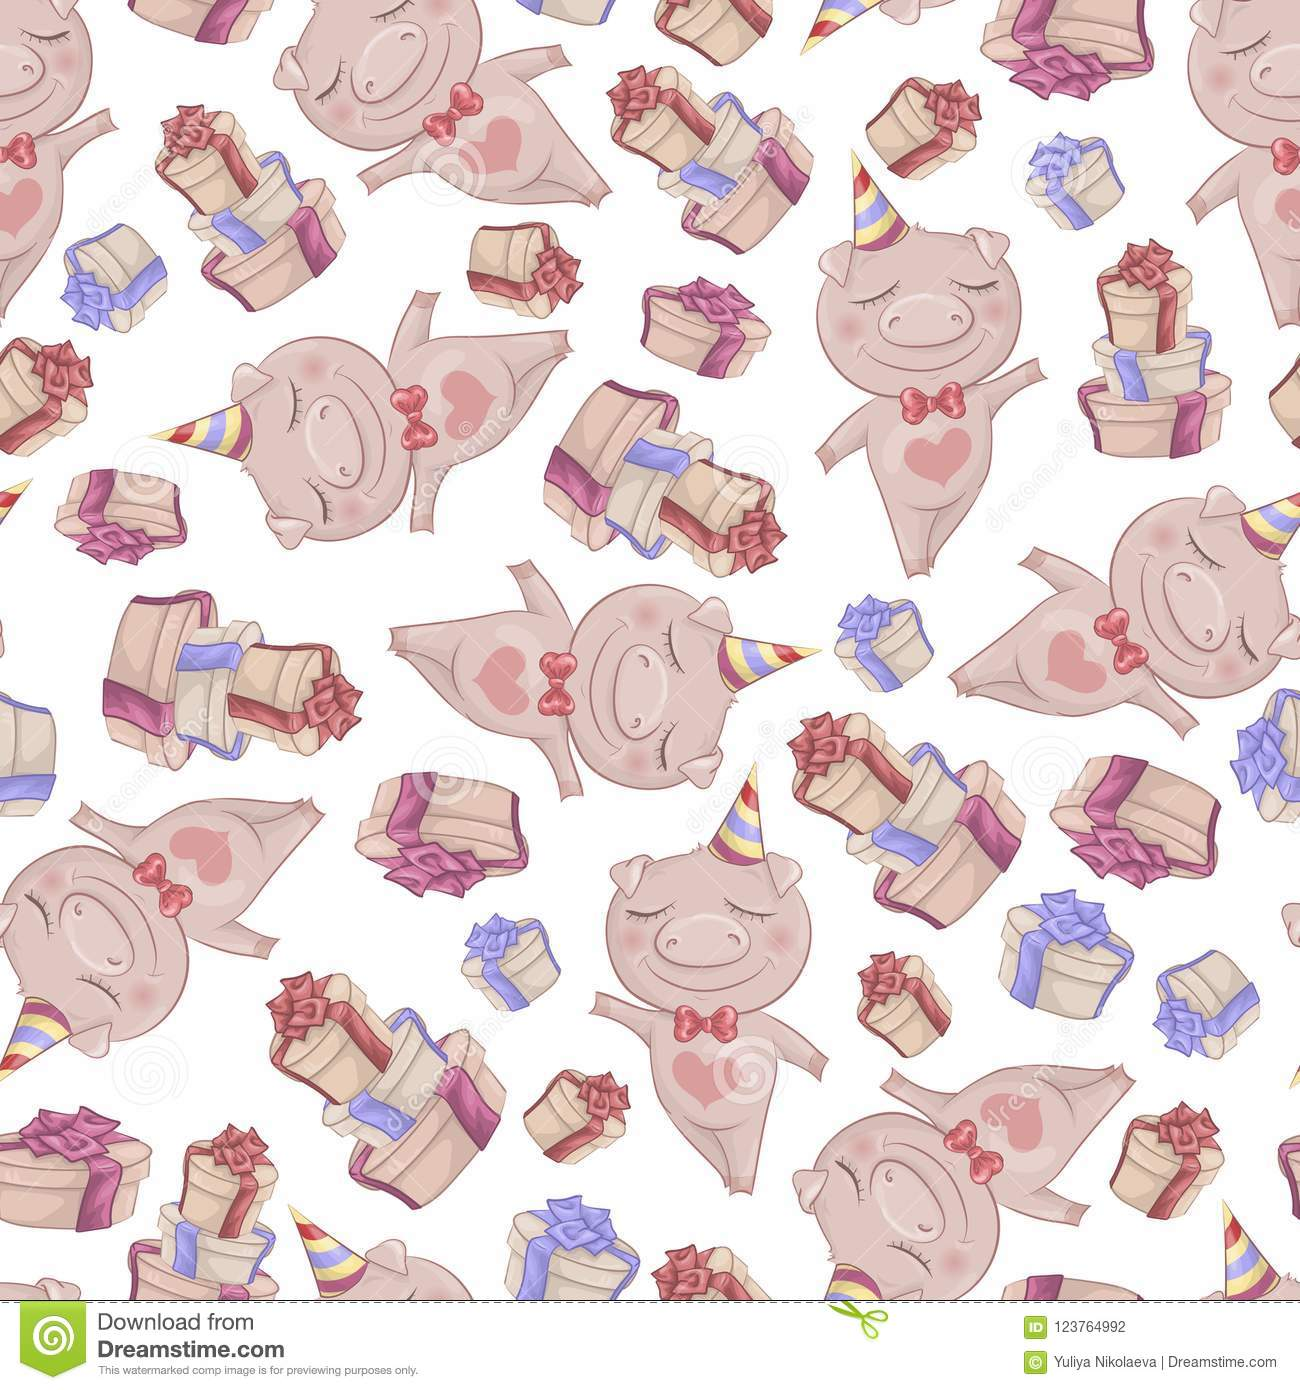 Texture with cute cartoon pigs. Seamless pattern